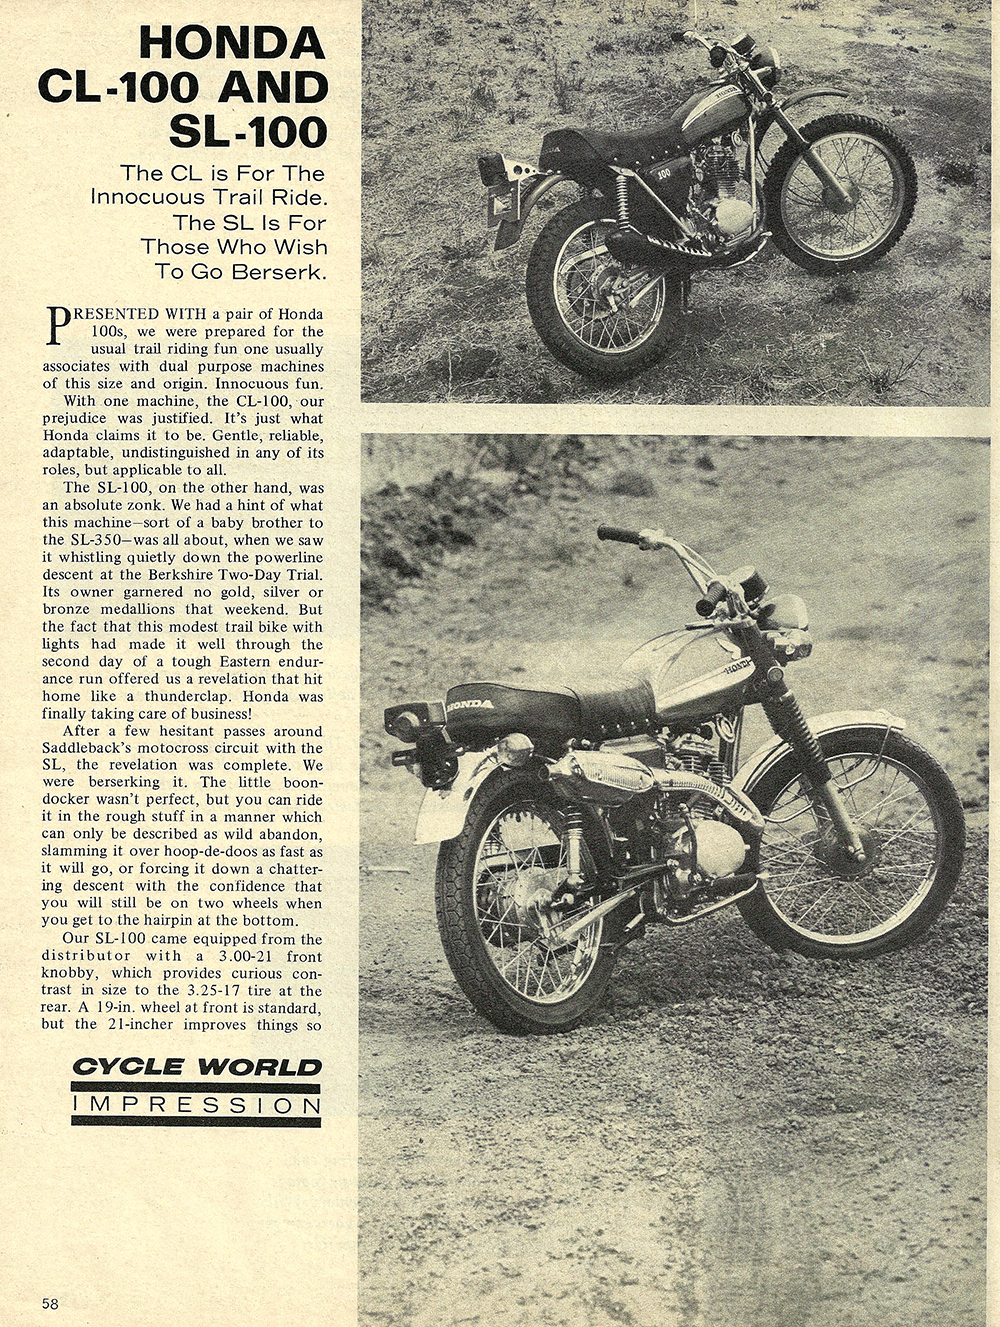 1970 Honda CL100 and SL100 road test 01.jpg